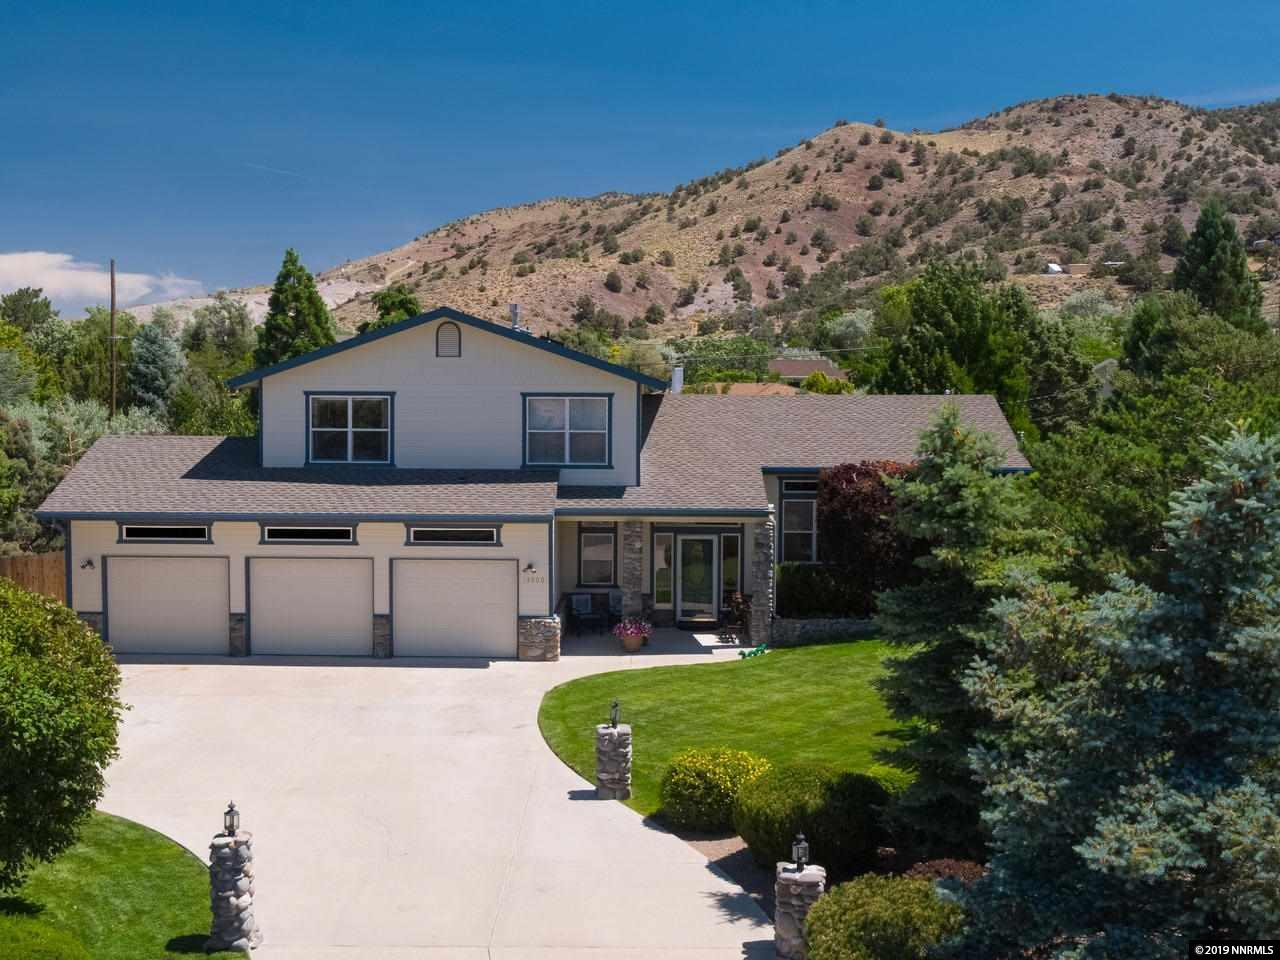 Image for 14000 Rim Rock Dr, Reno, NV 89521-7347